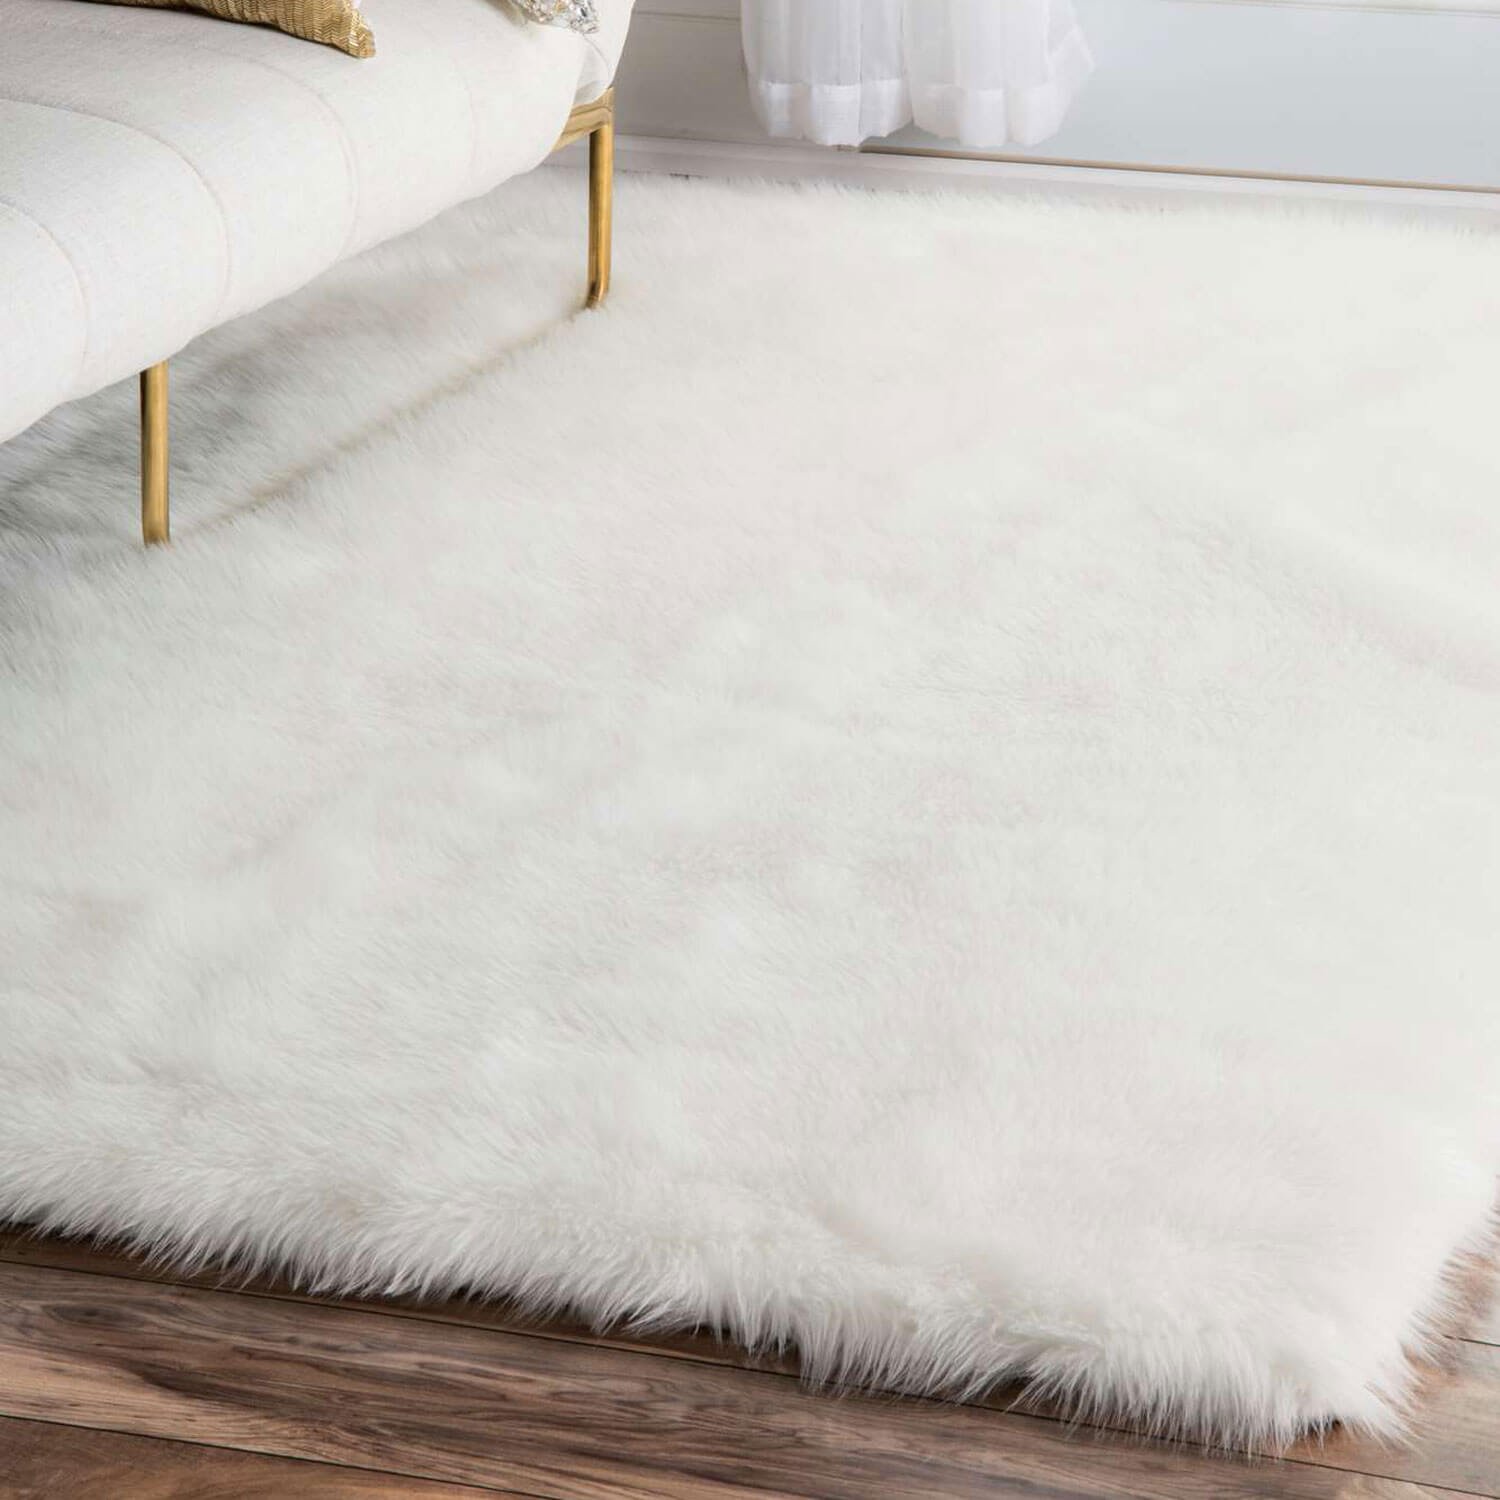 Faux Sheepskin Area Rug Dormify